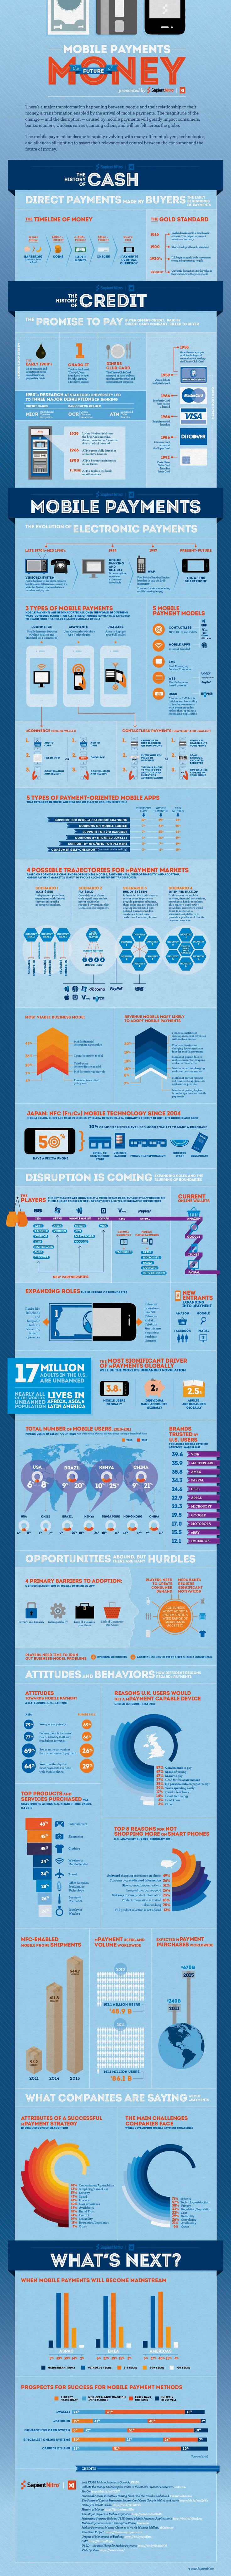 The Future of Money and Mobile